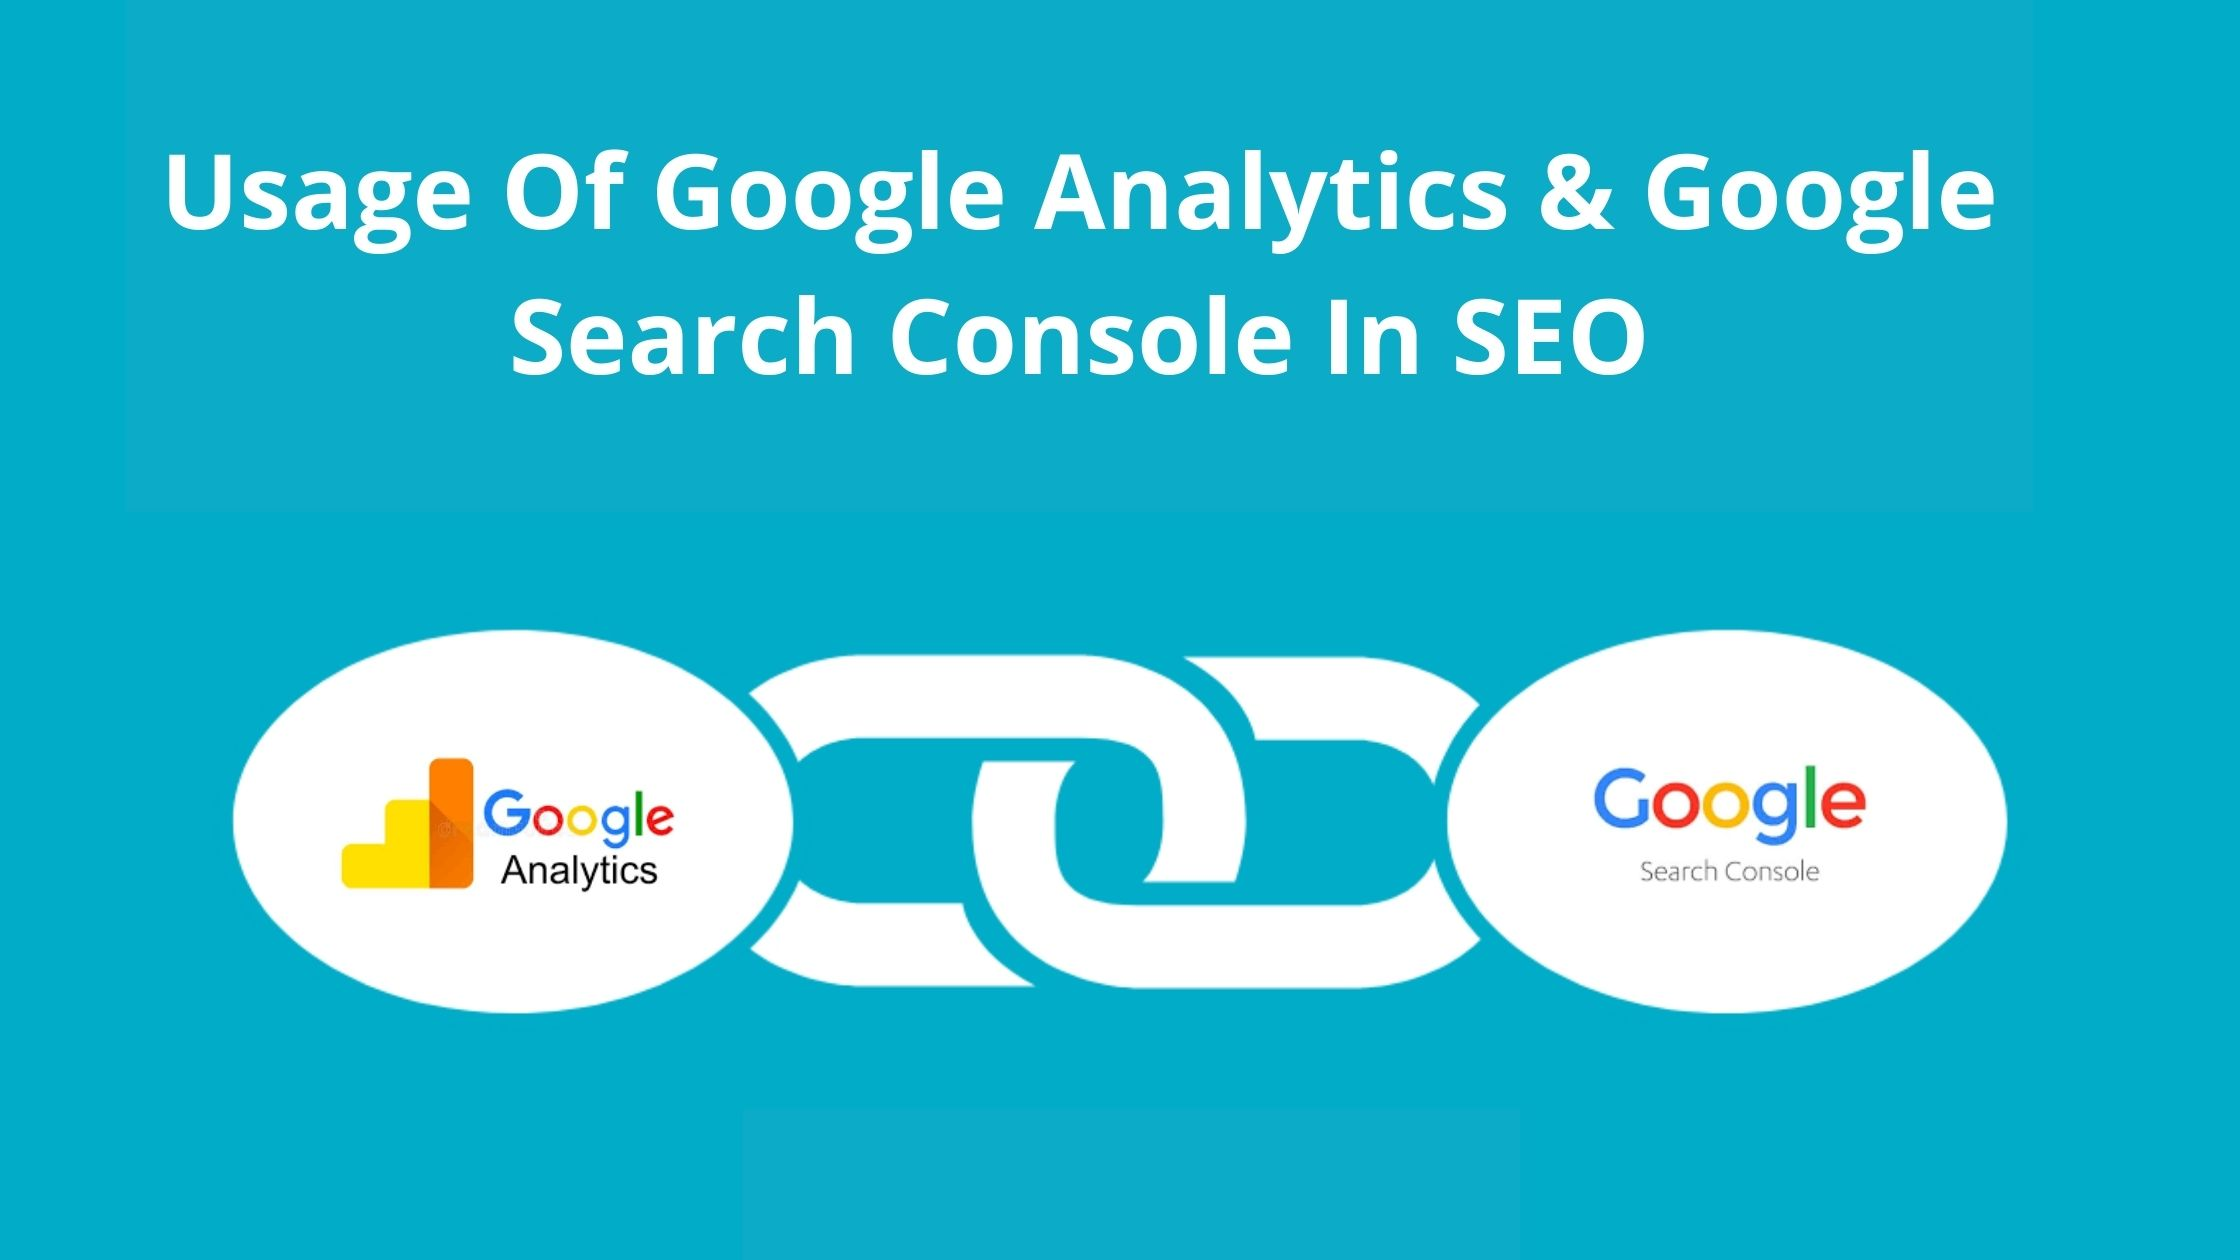 Usage Of Google Analytics & Google Search Console In SEO